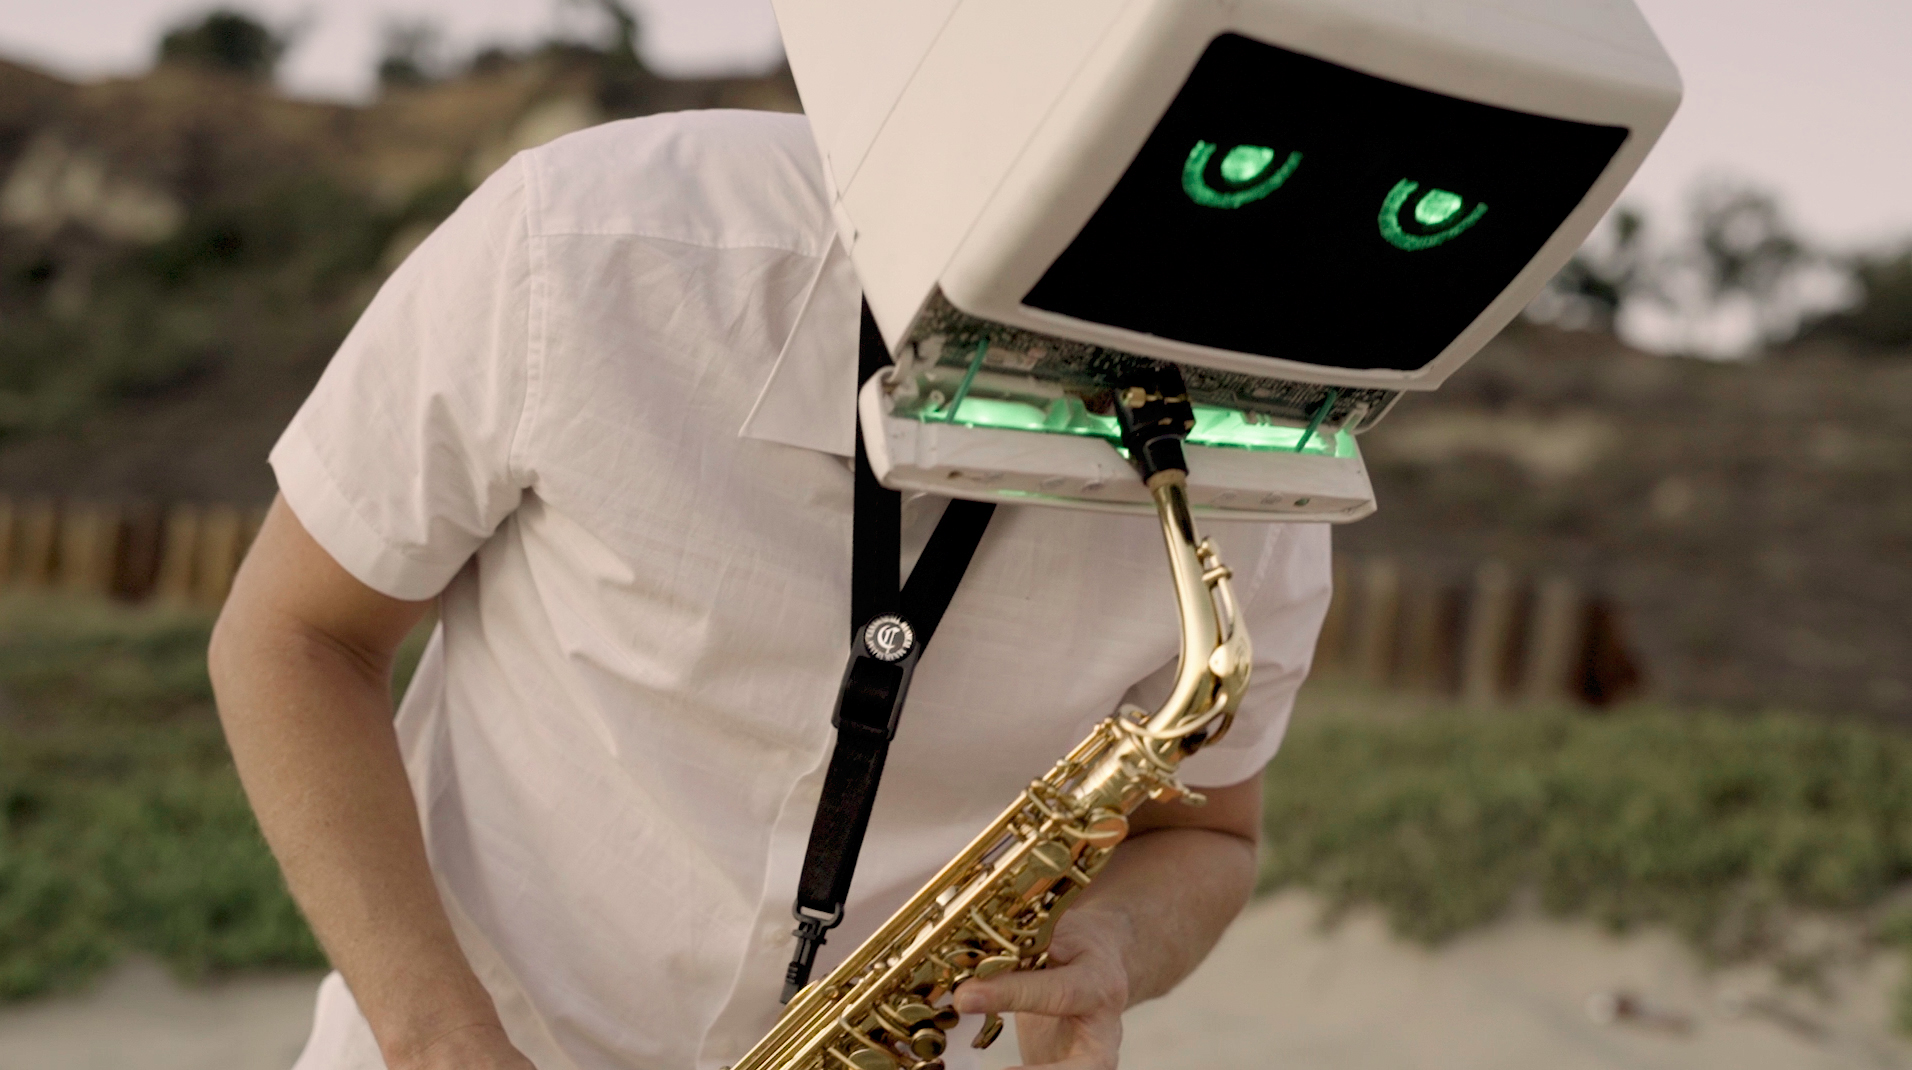 Saxophone playing Robot